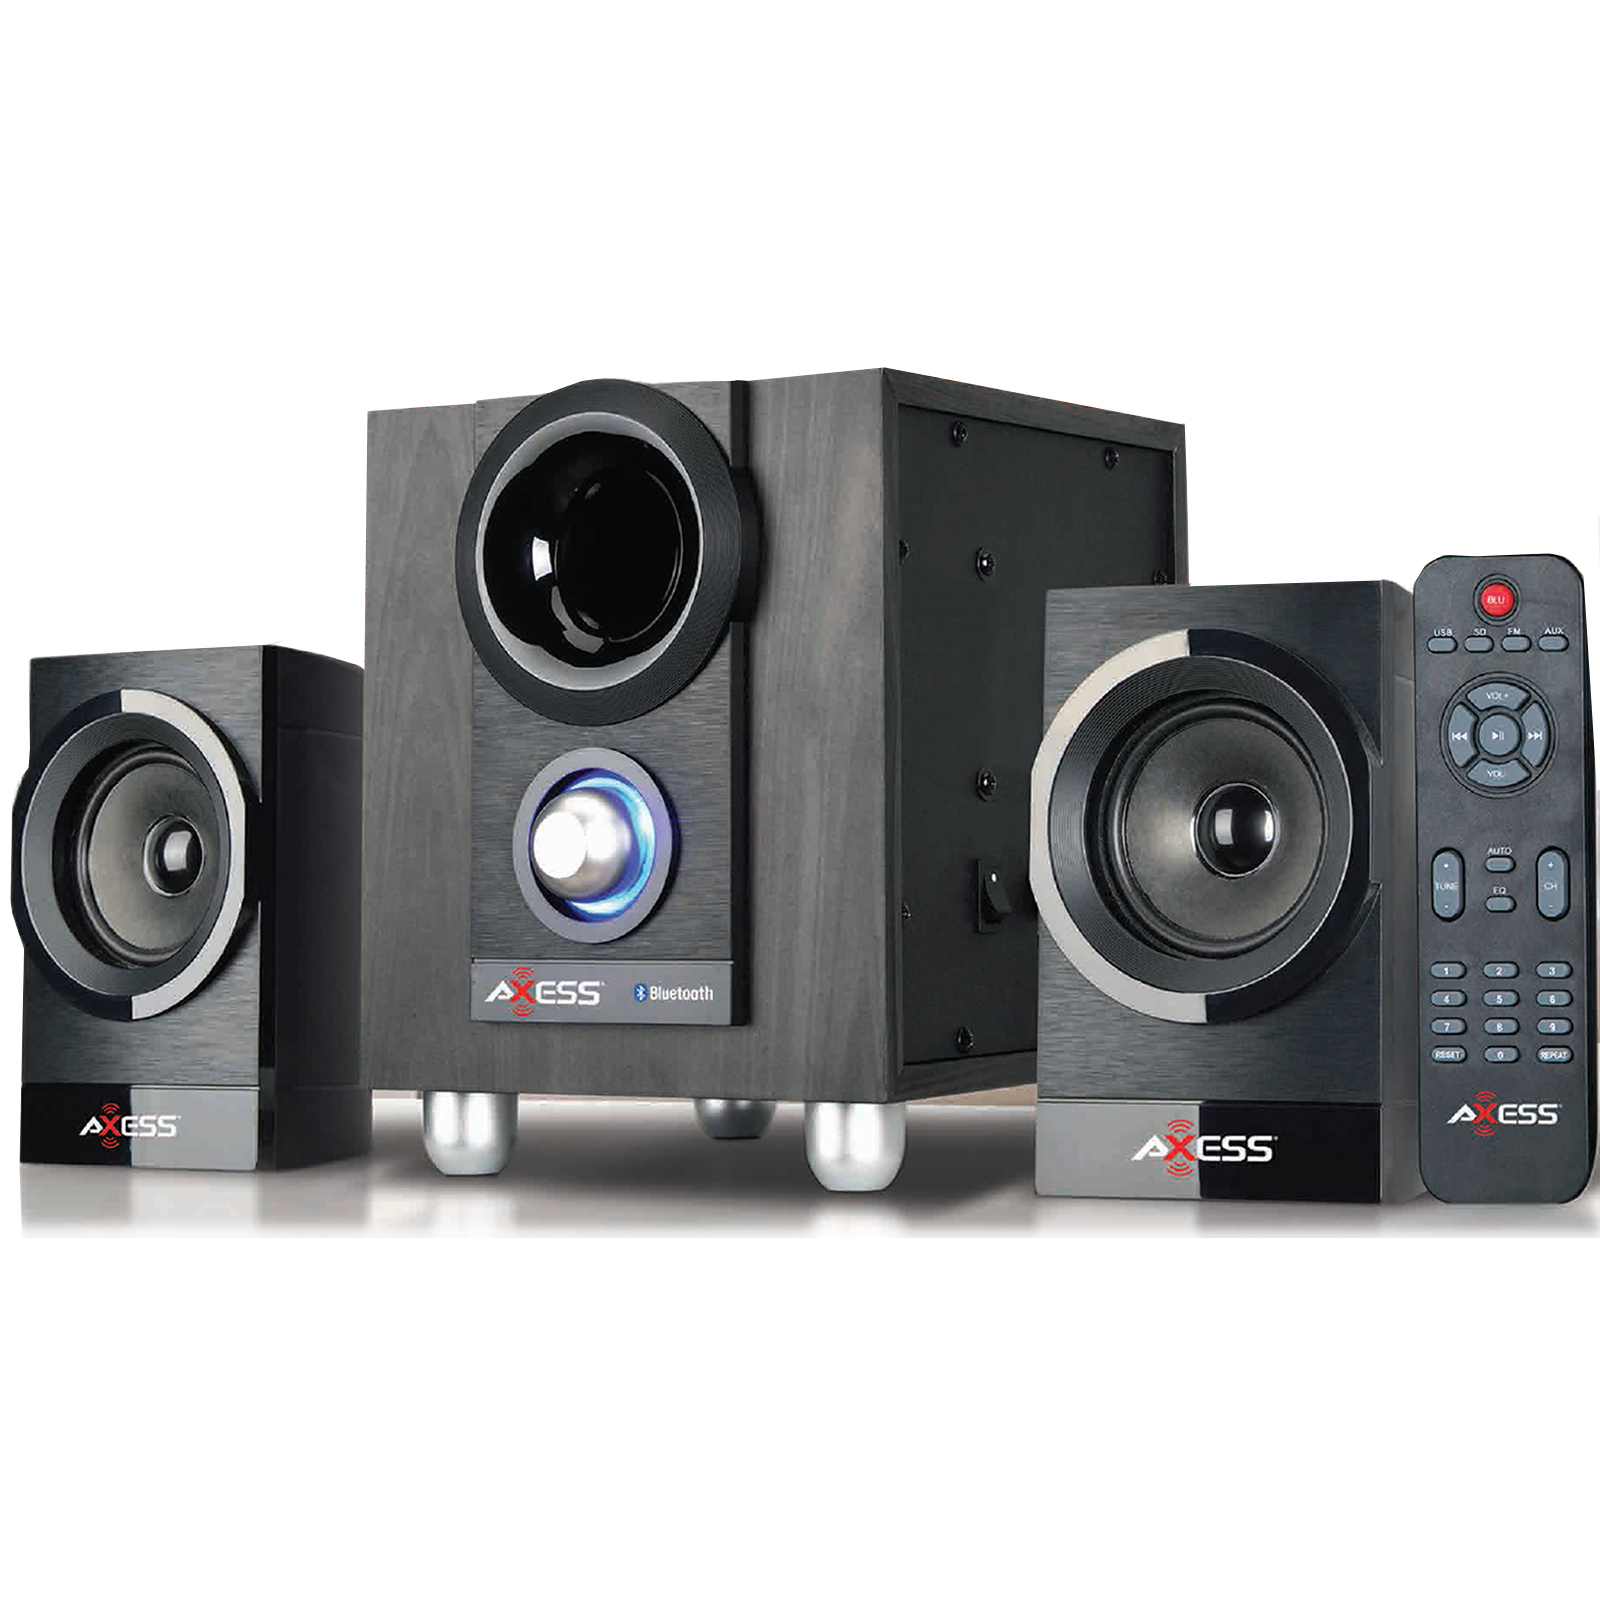 Image of Axess 97093166M 2.1 Mini Entertainment System with Bluetooth